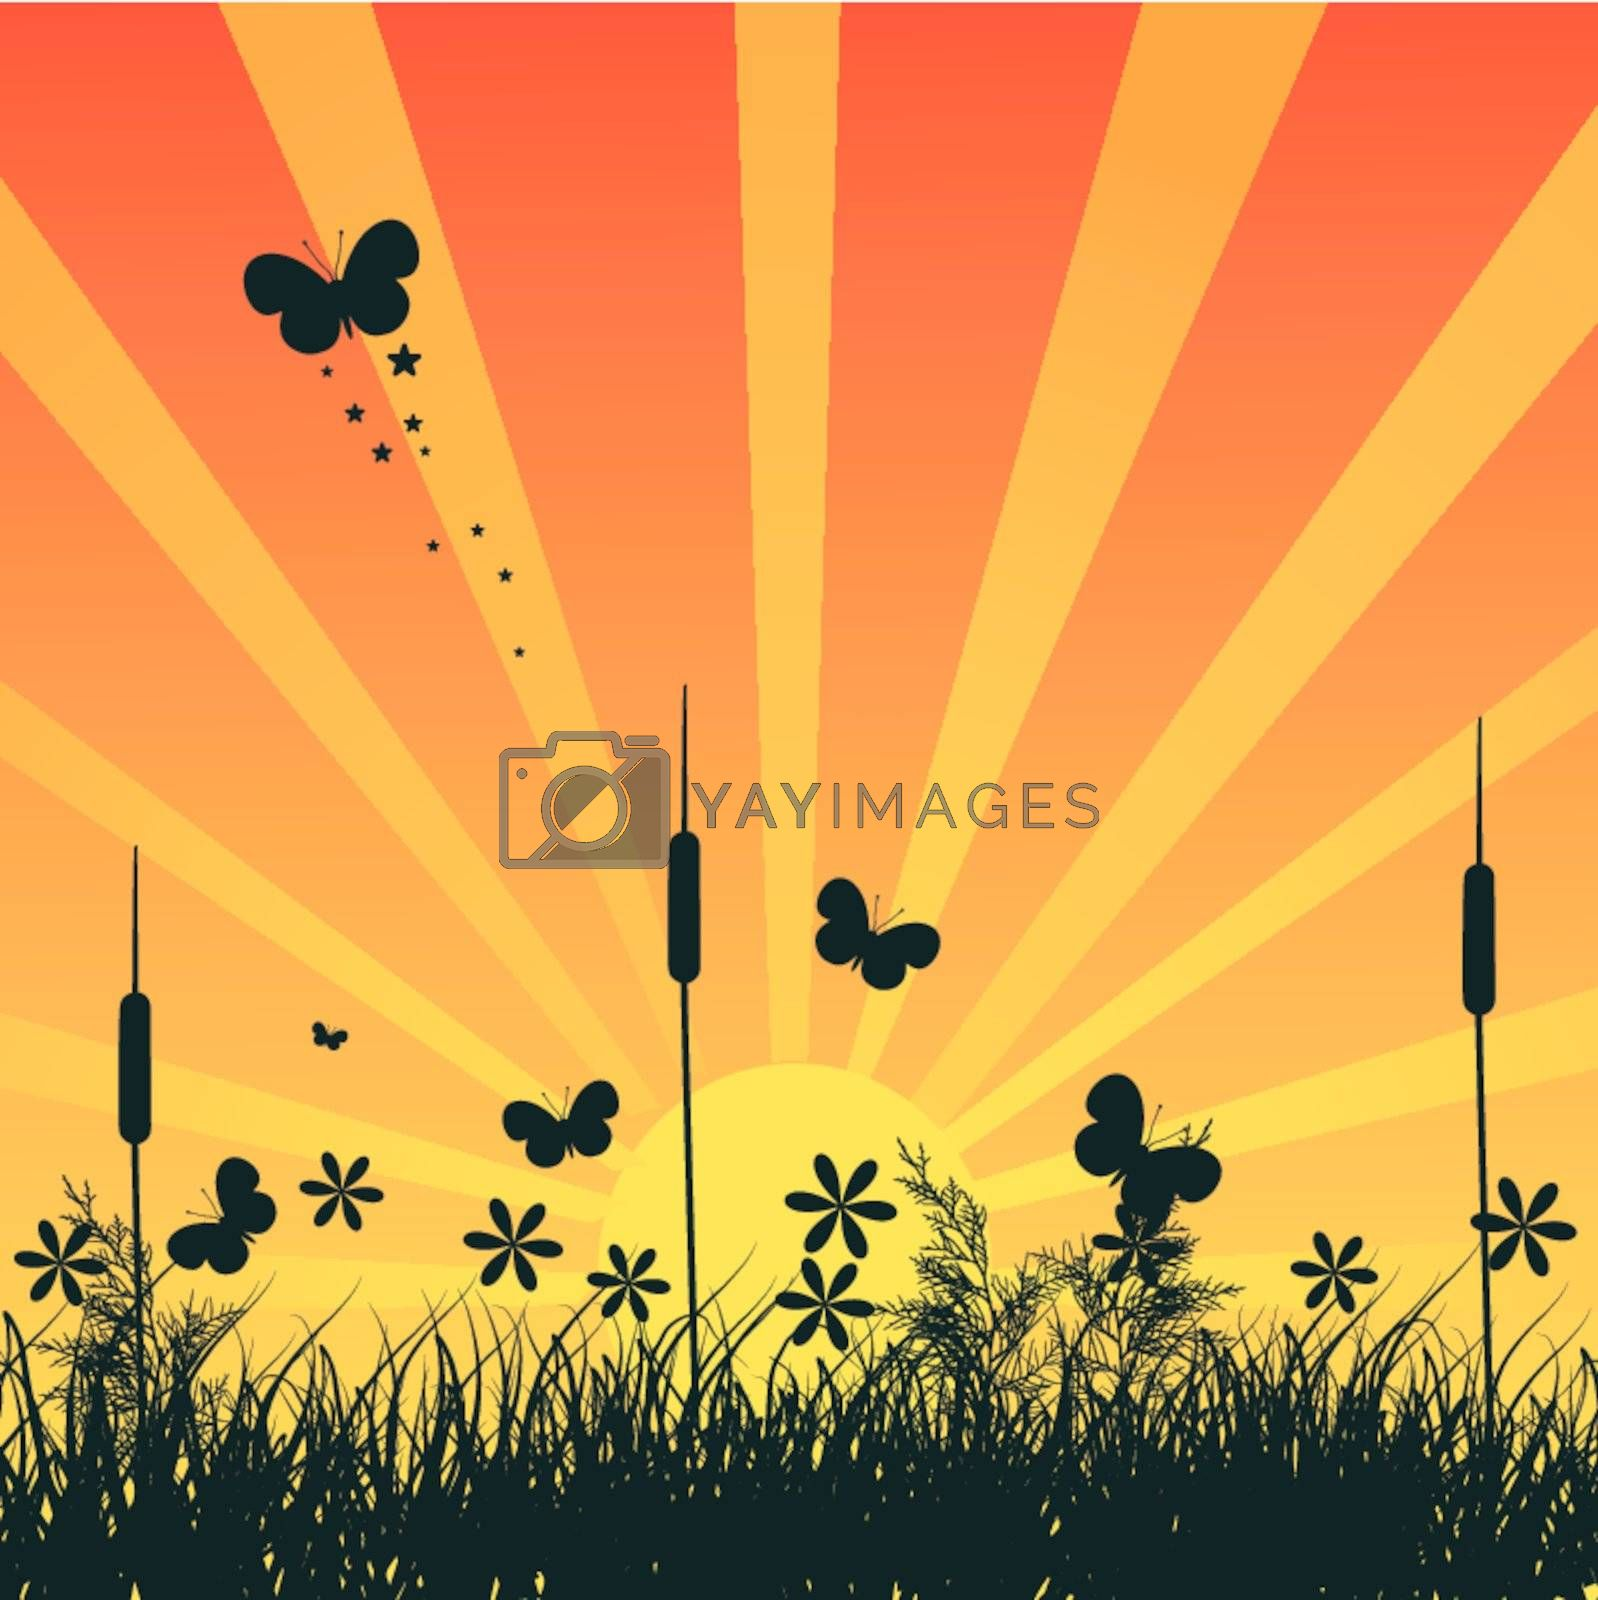 Grass silhouette on meadow EPS 10 vector file included